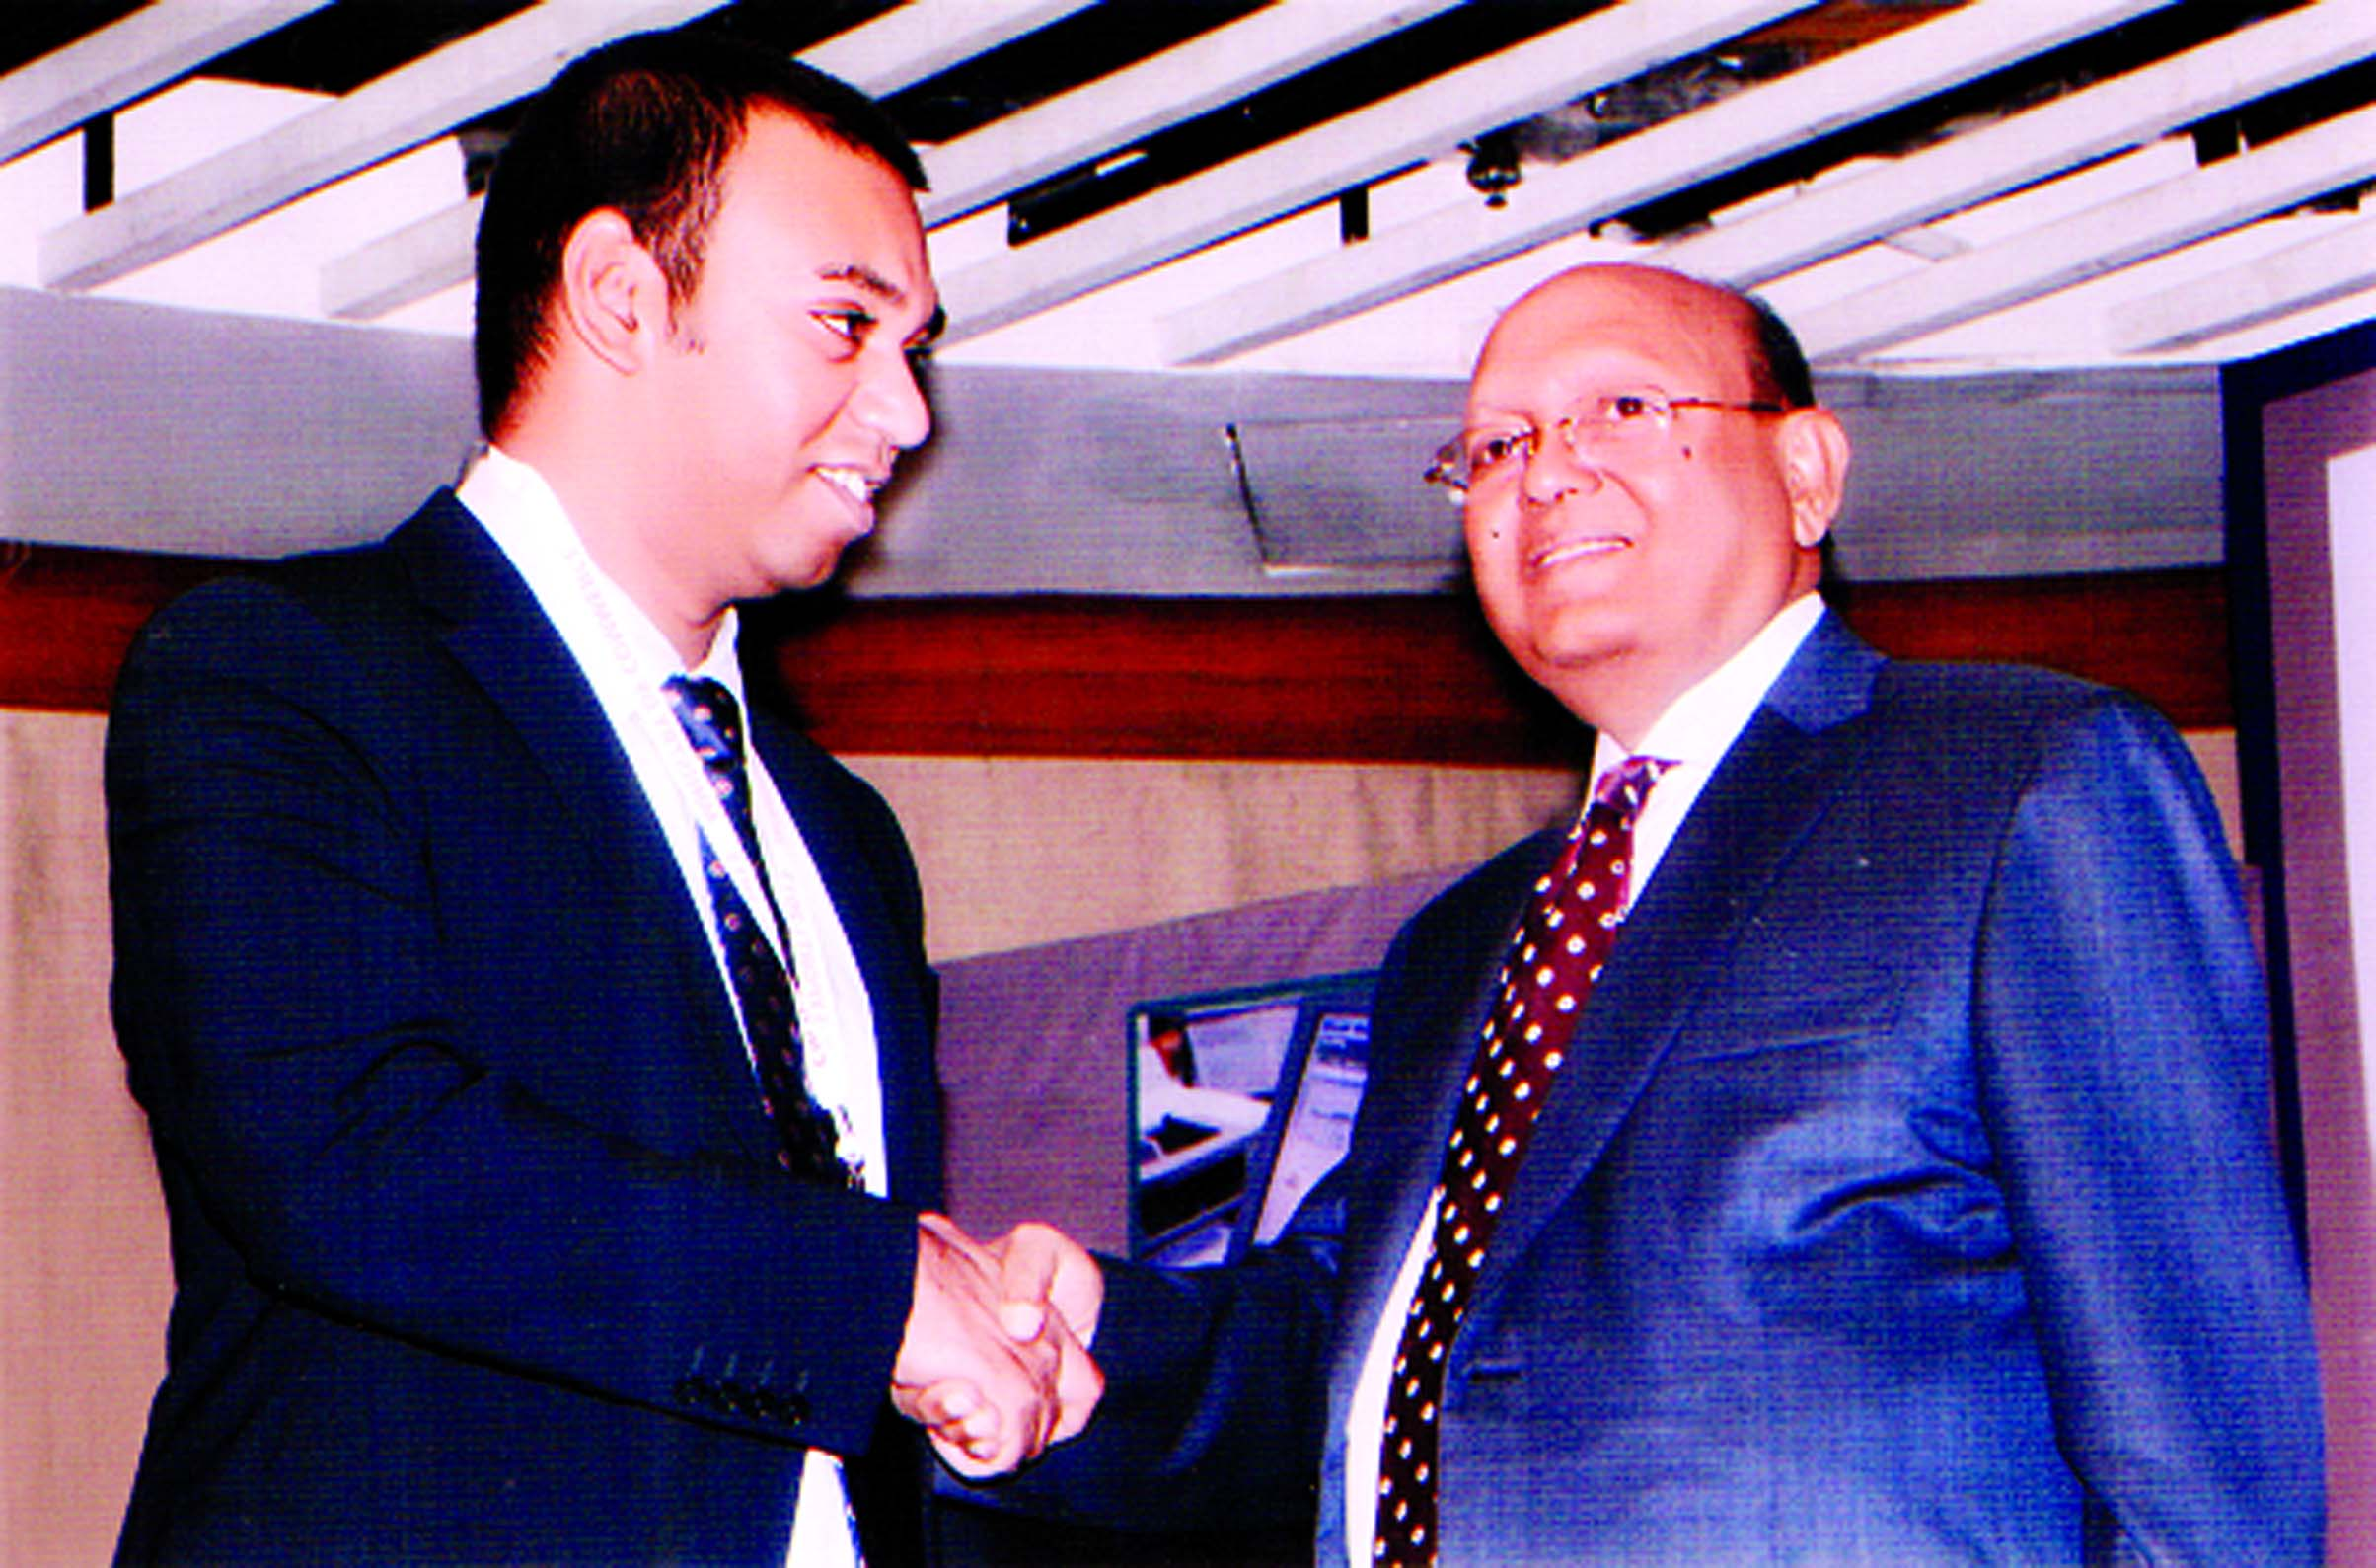 Commerce Minister Tofael Ahmed MP Recently Handed Over CIP Card To Abdul Momin Mondol Managing Director Montrems Ltd For His Outstanding Contributions